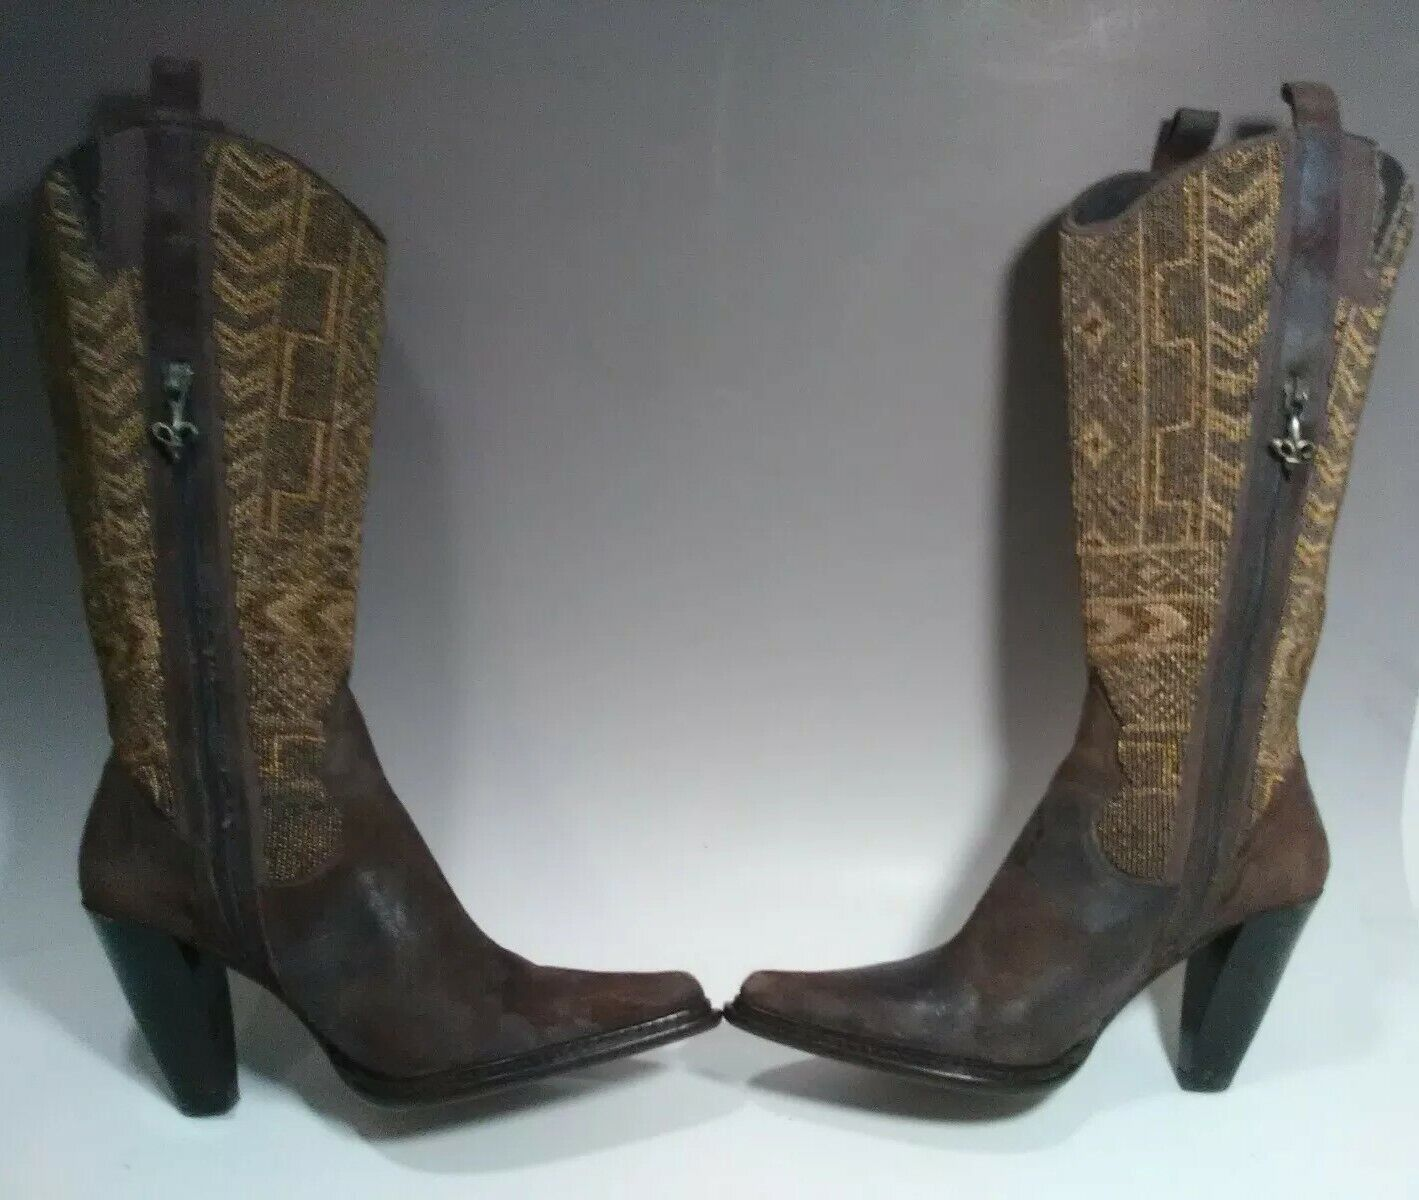 Donald J Pliner goldie goldie goldie Western Couture Boots gold Beaded Suede Leather BrownSZ 9 6bc6bb